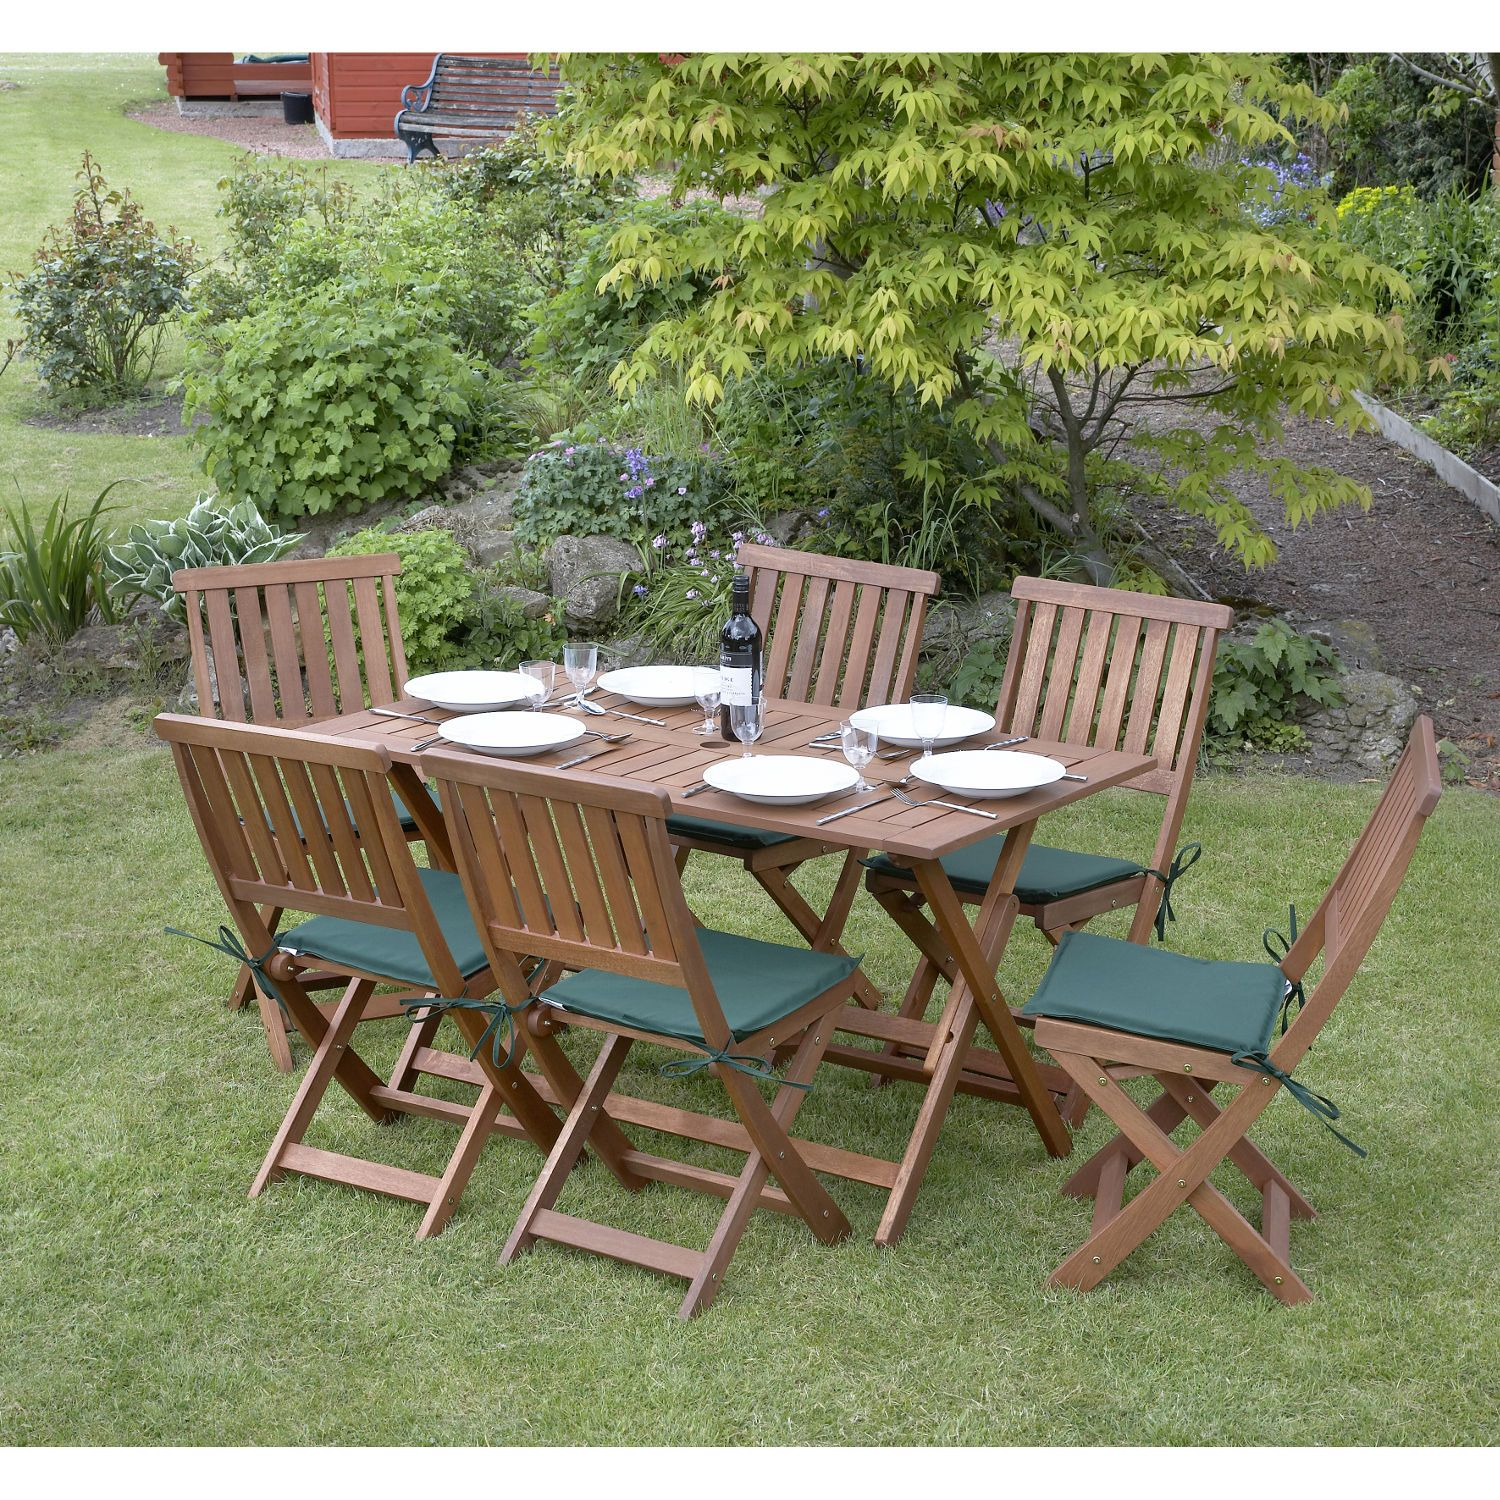 Garden Furniture 6 Seater concord 6 seater folding garden set – the uk's no. 1 garden